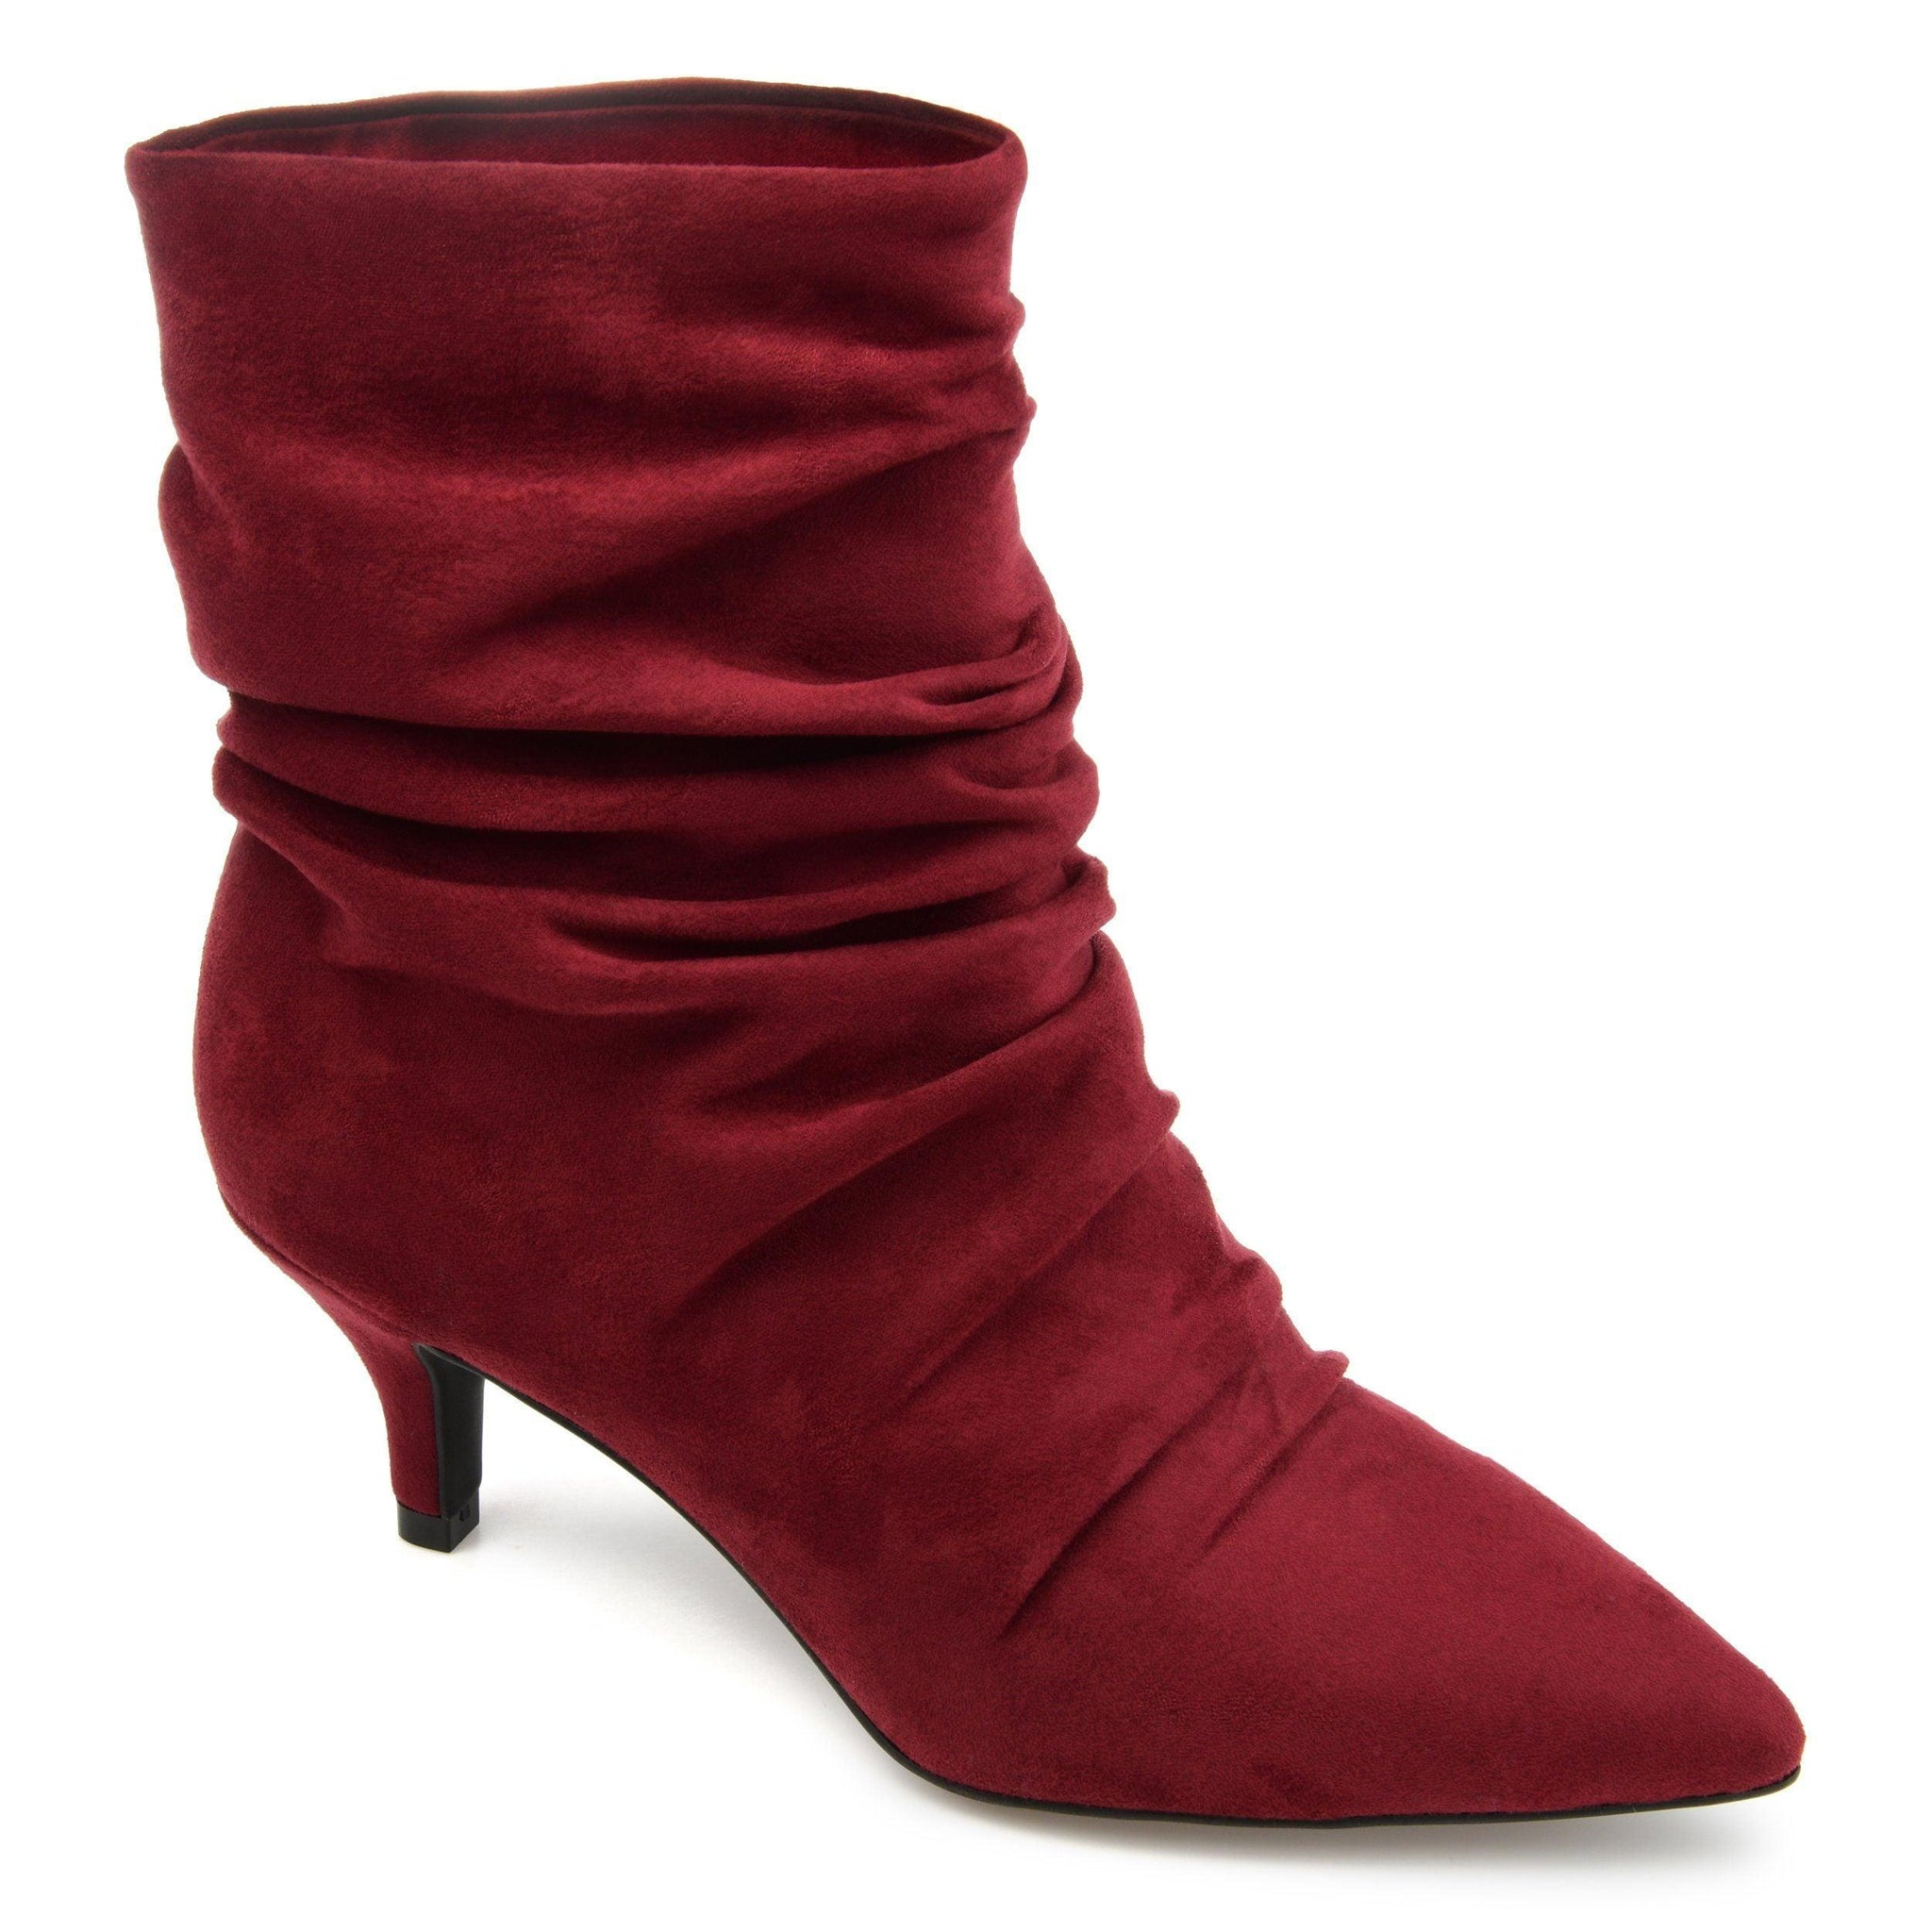 JO SHOES Journee Collection Wine 6